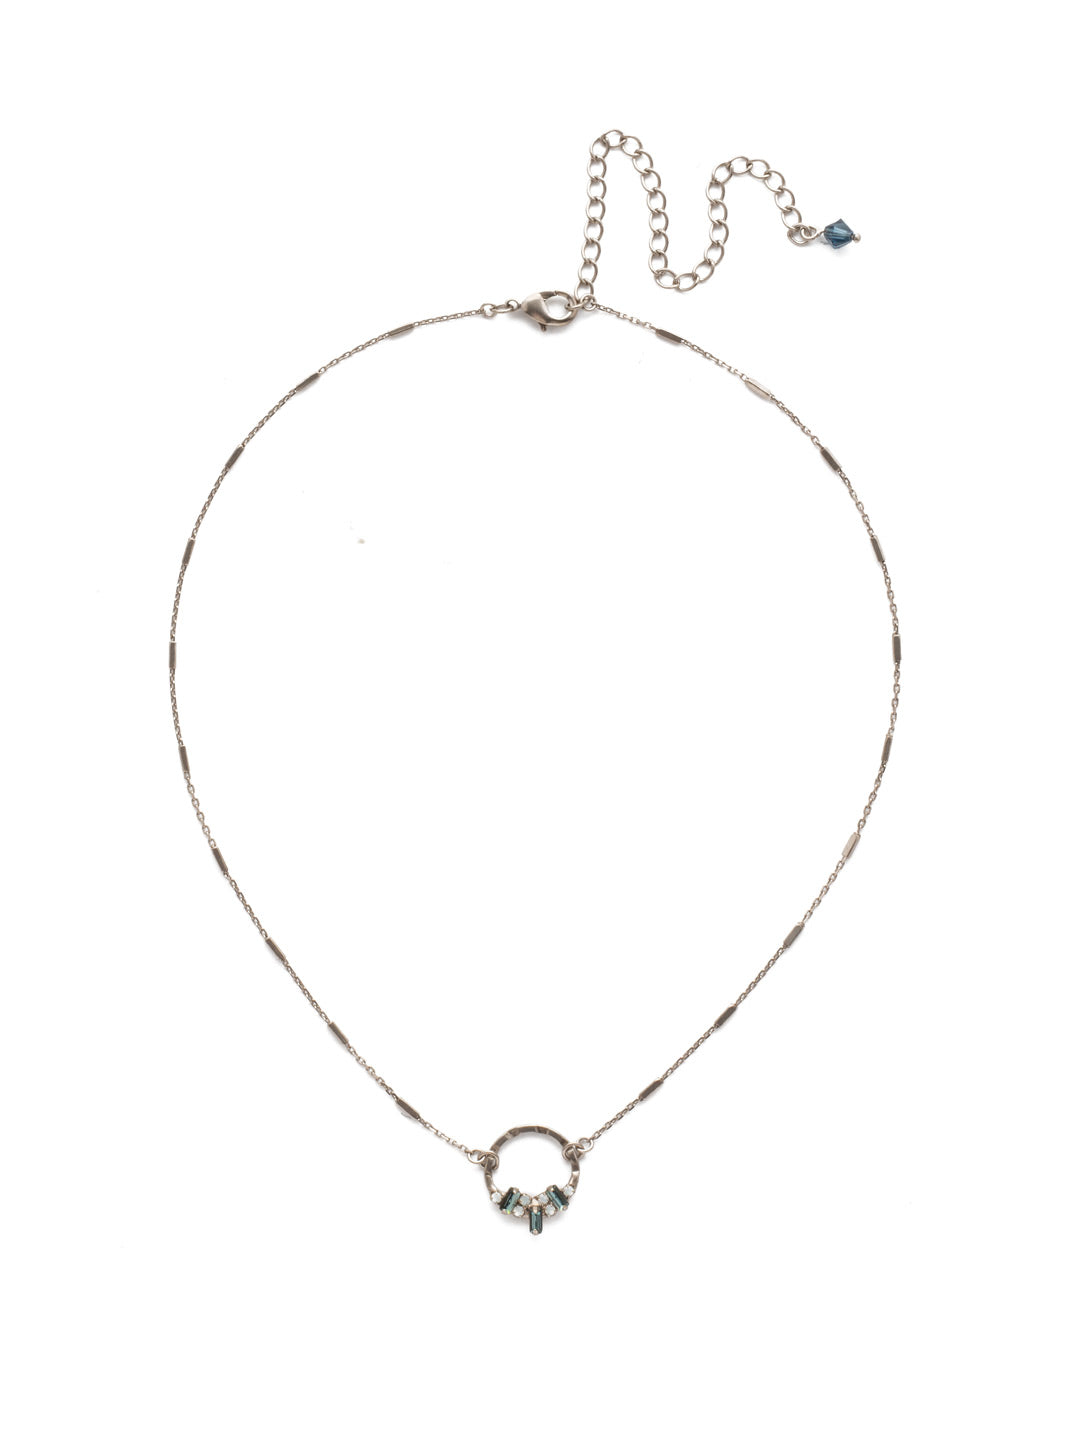 Haute Pendant Necklace - NDL28ASGBL